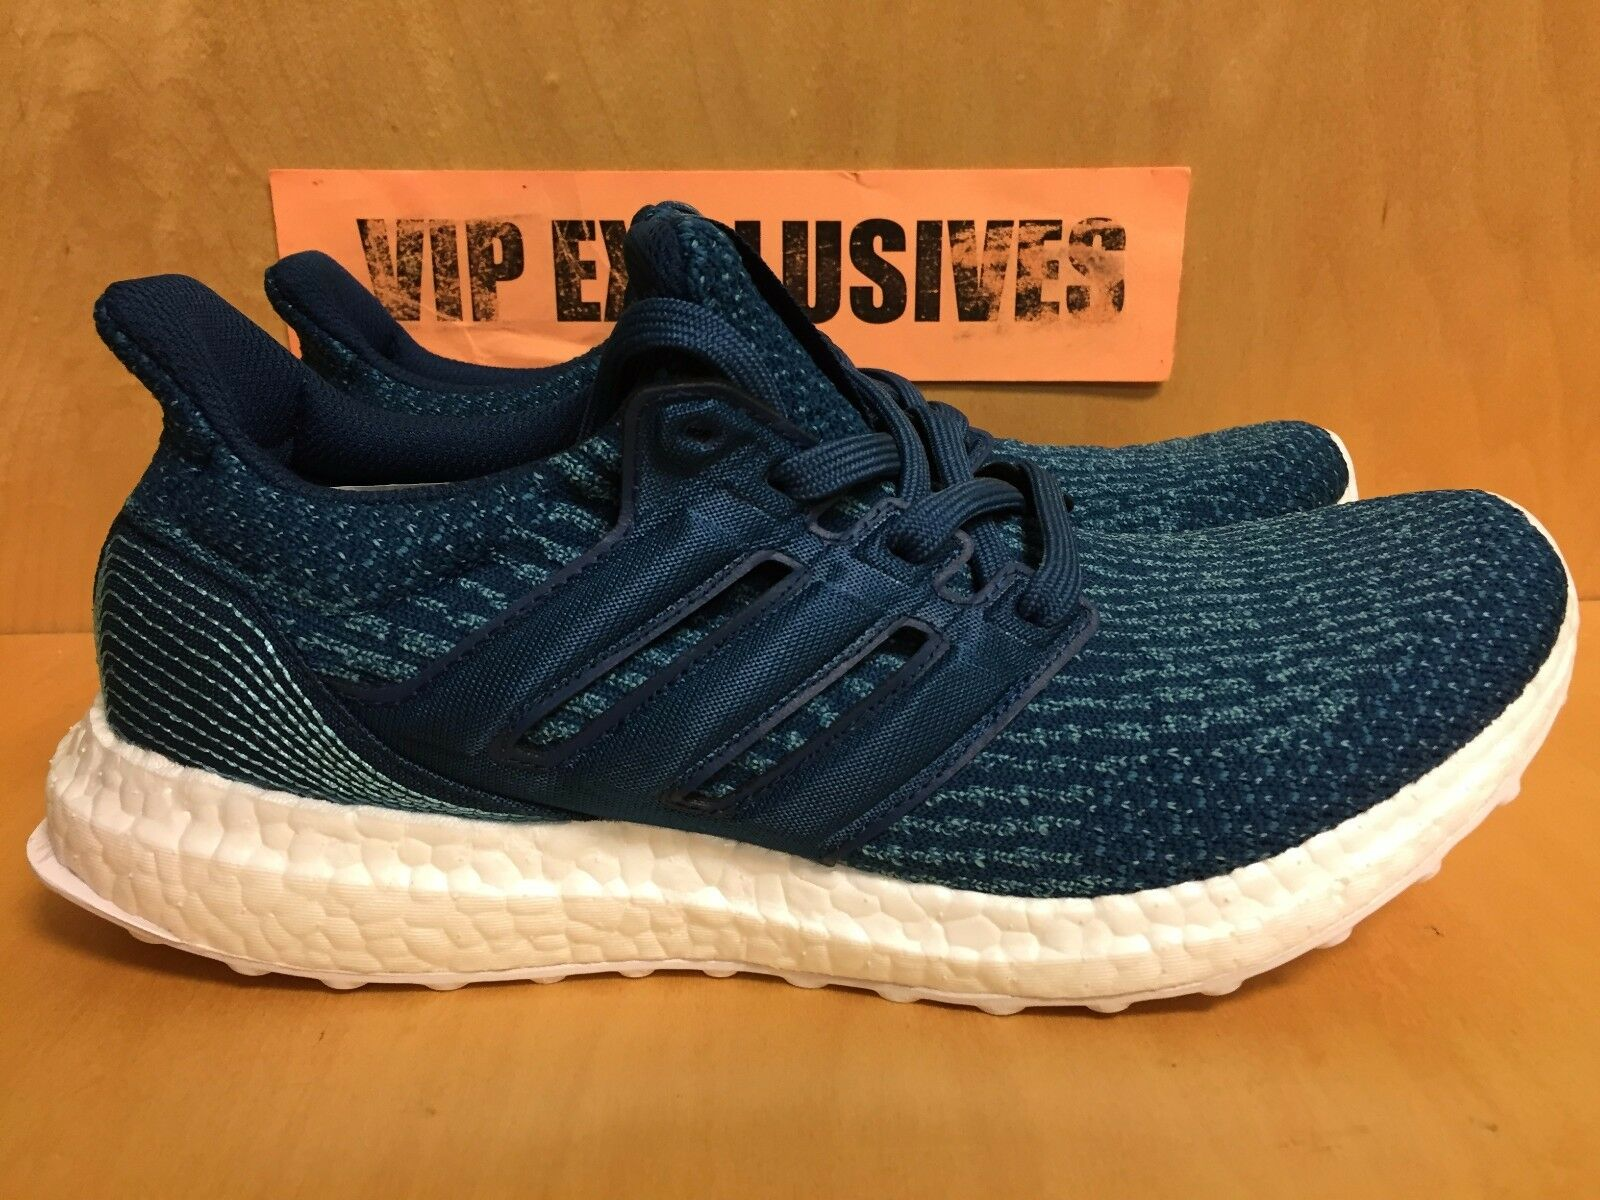 Adidas Ultra Boost Parley m 3.0 Navy bluee Ocean 2017 UltraBoost BB4762 LIMITED